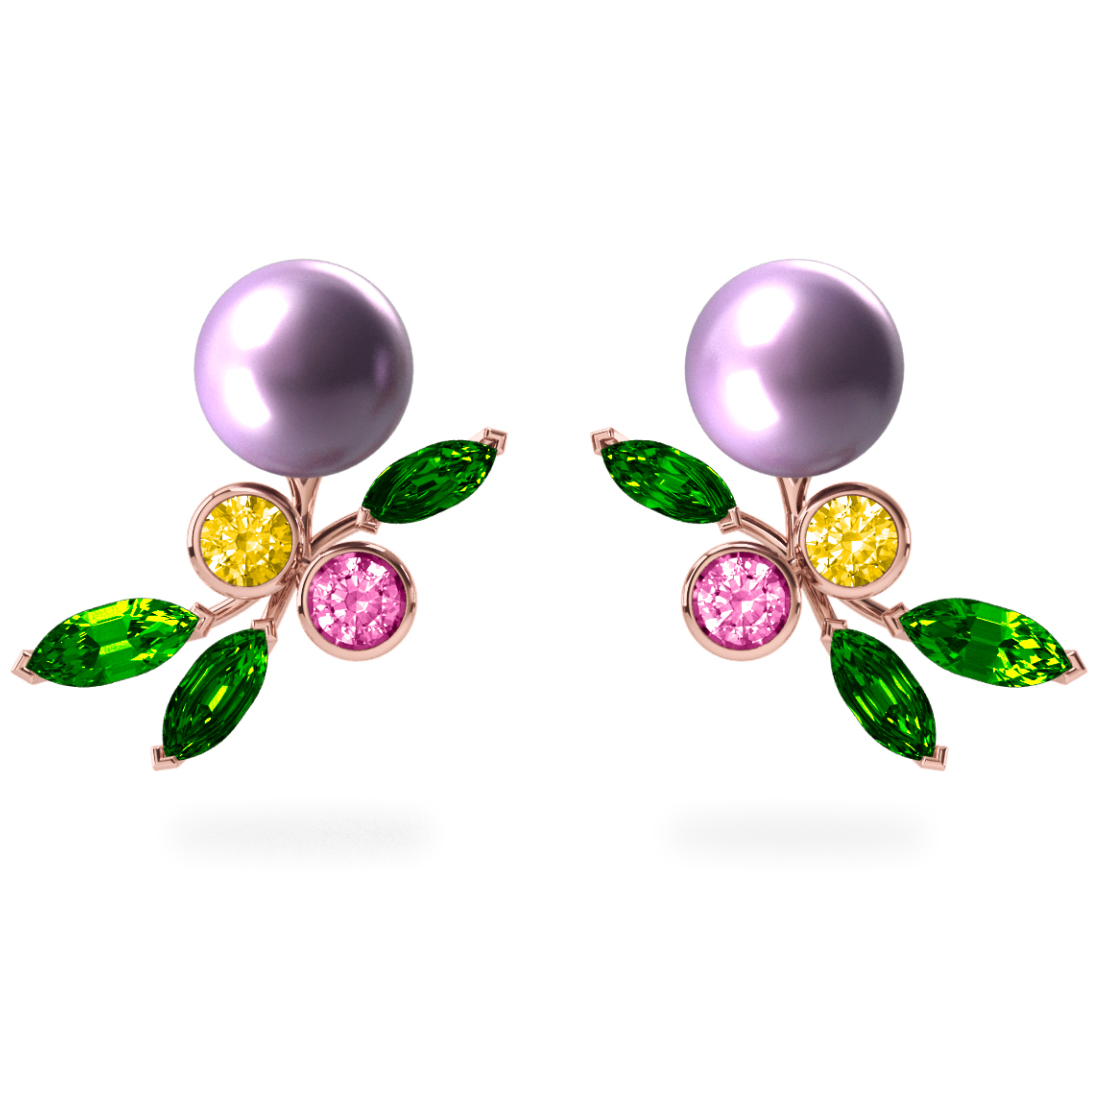 Boucles d'oreilles My Angel Lavande - Saphirs, diamants, tsavorites & perles d'eau douce <br /> Or rose 18 carats